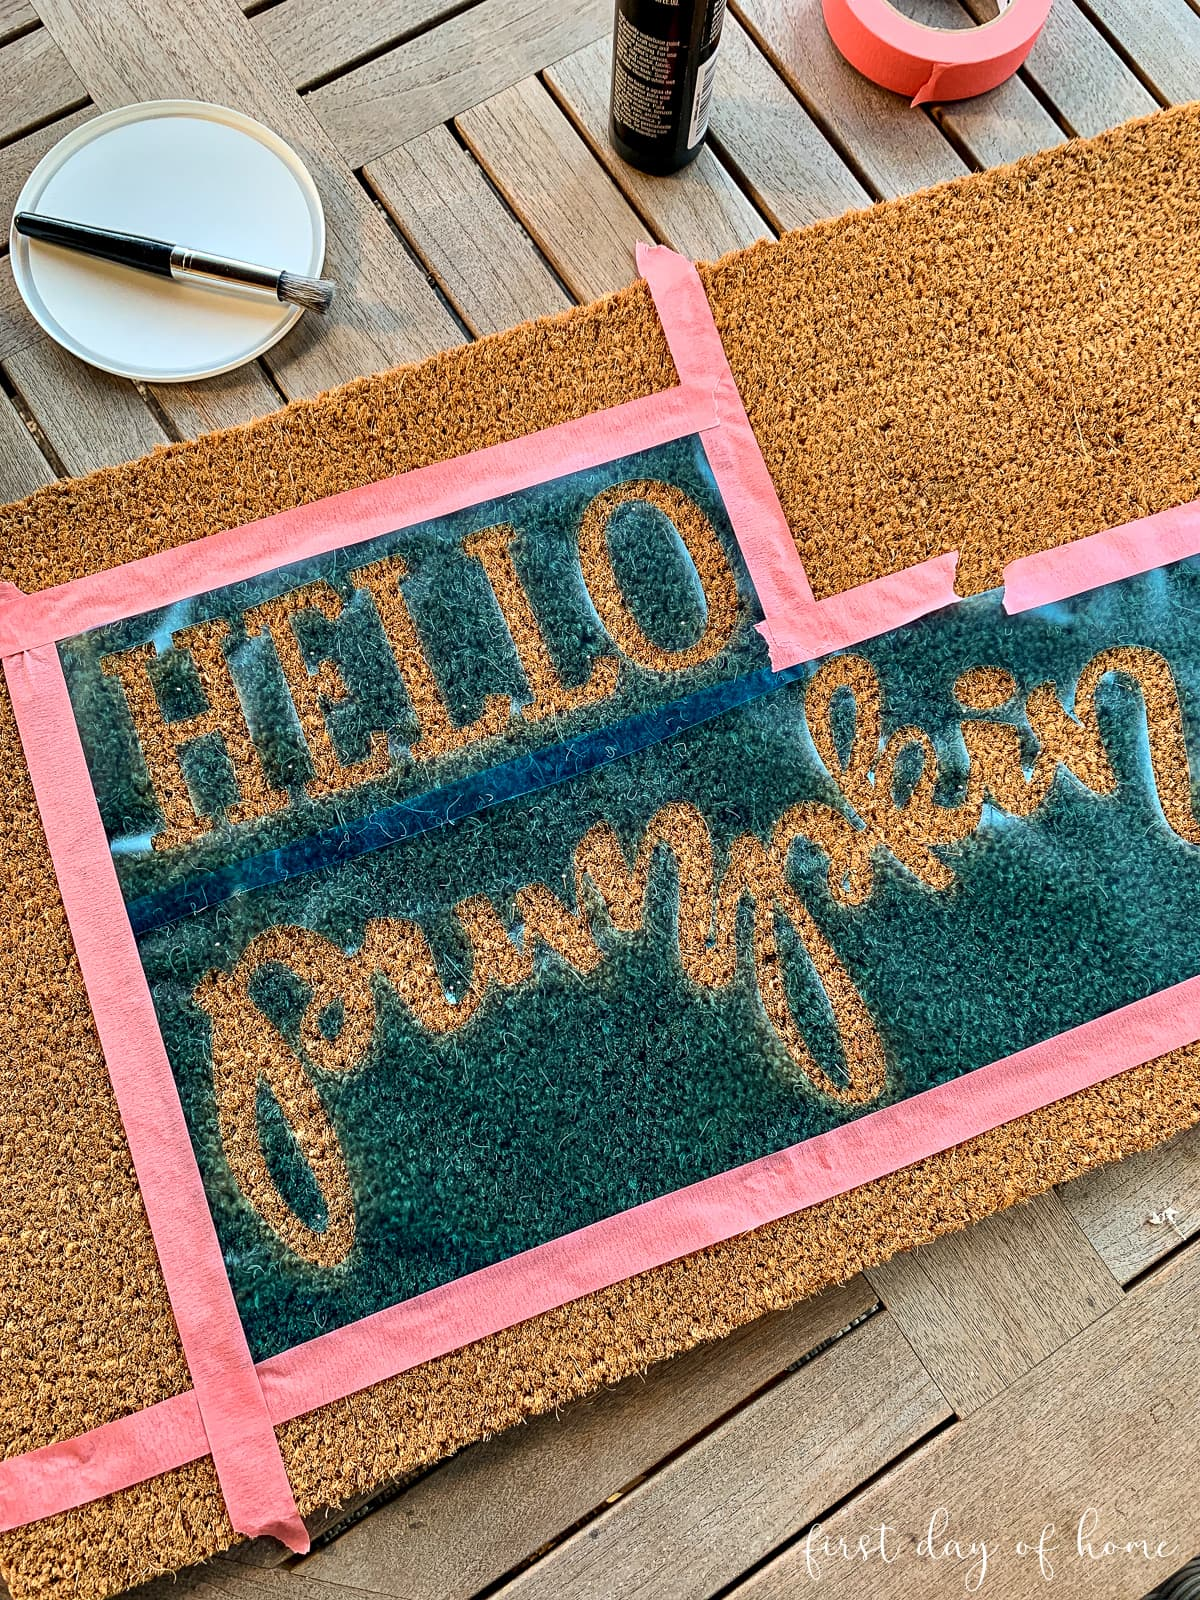 Applying the stencil to the coir doormat with pins and painter's tape